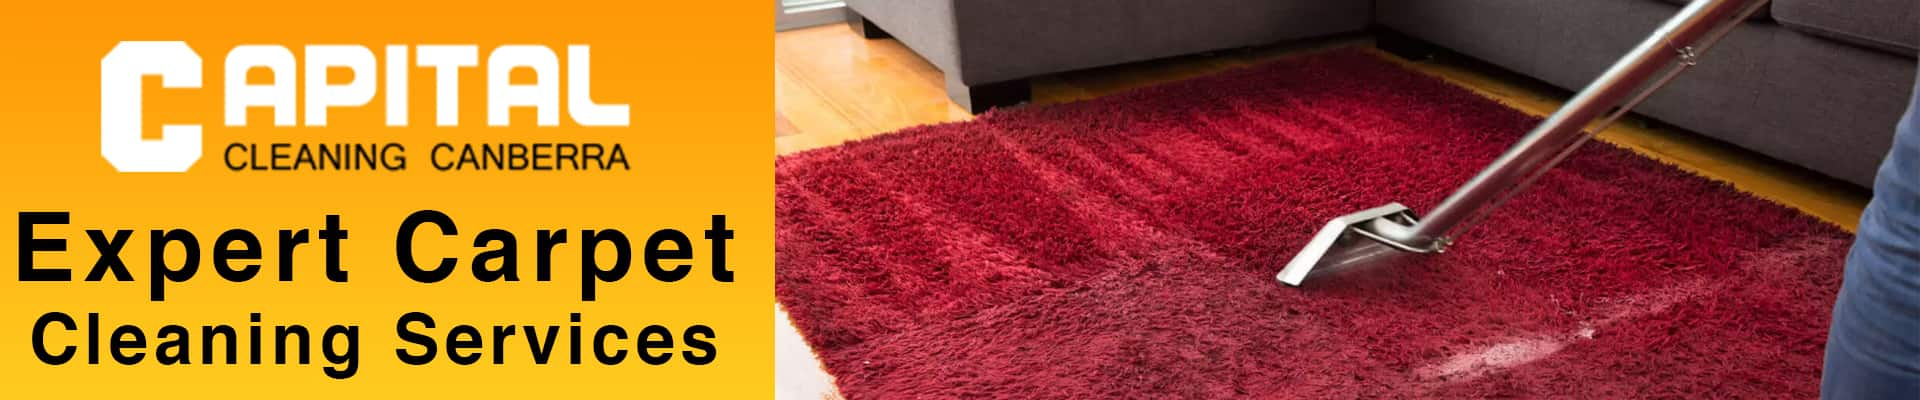 Expert Carpet Cleaning Services Theodore